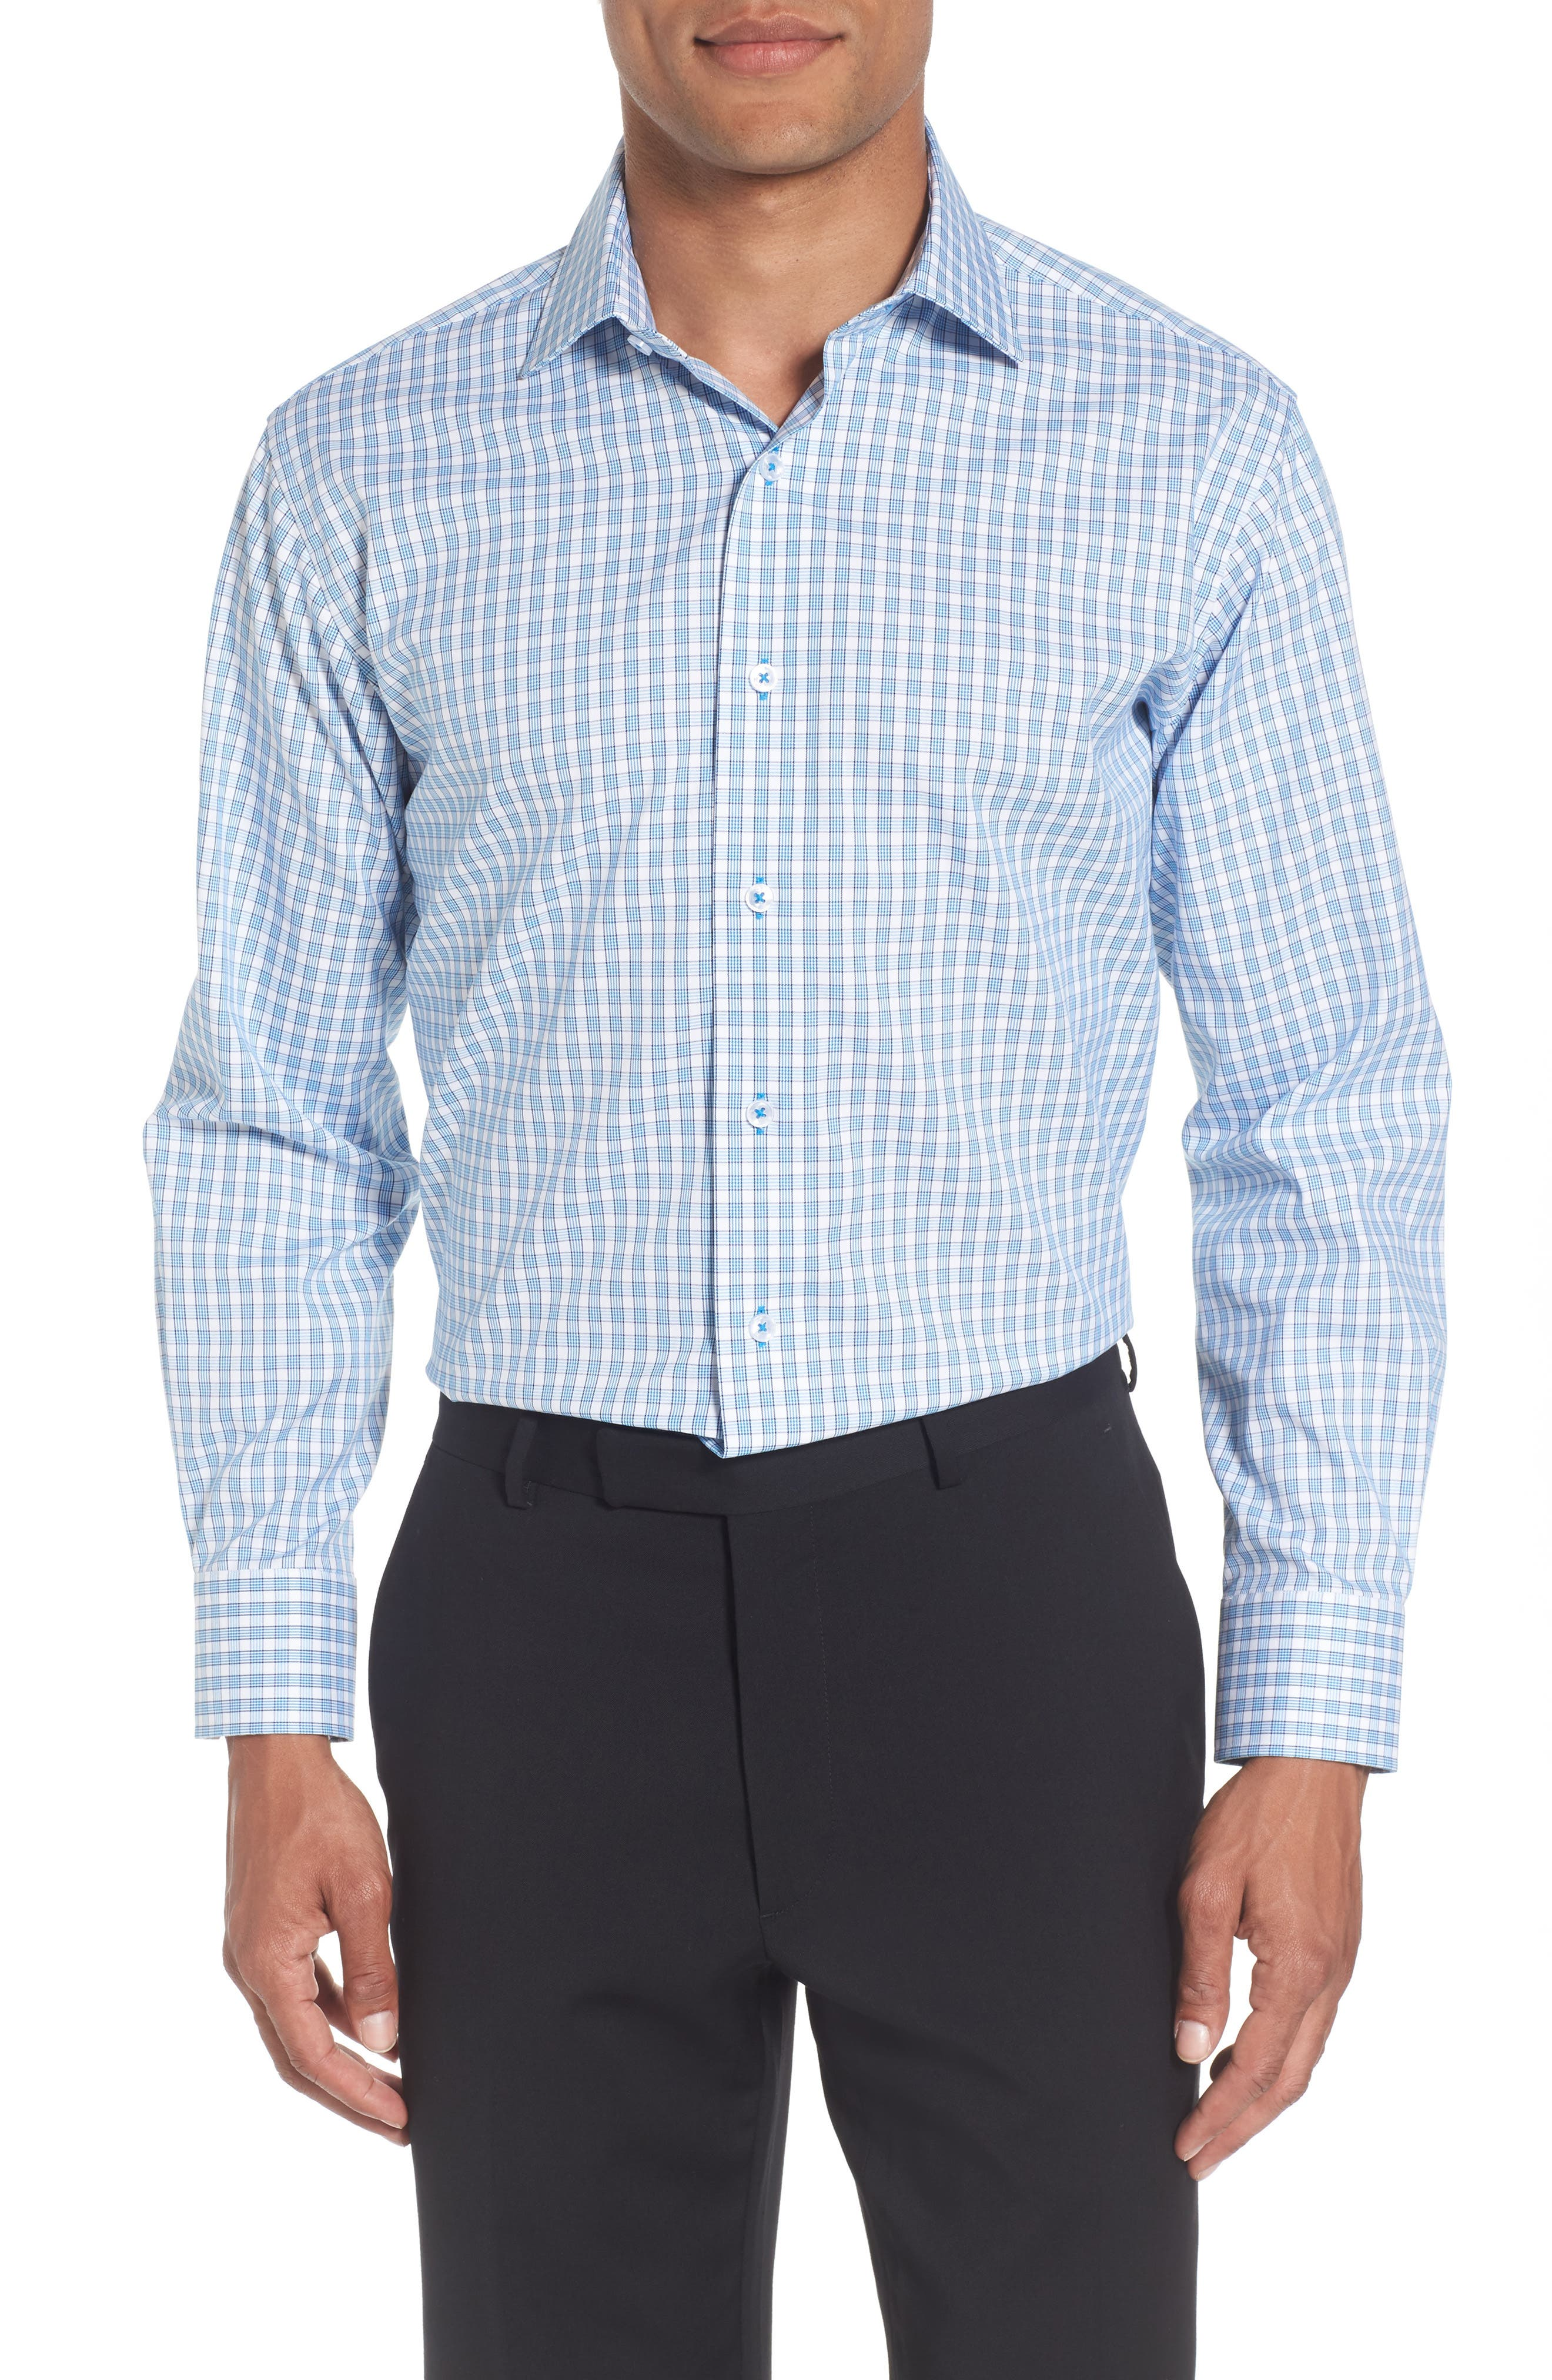 Trim Fit Plaid Dress Shirt,                         Main,                         color, Light Blue/ White